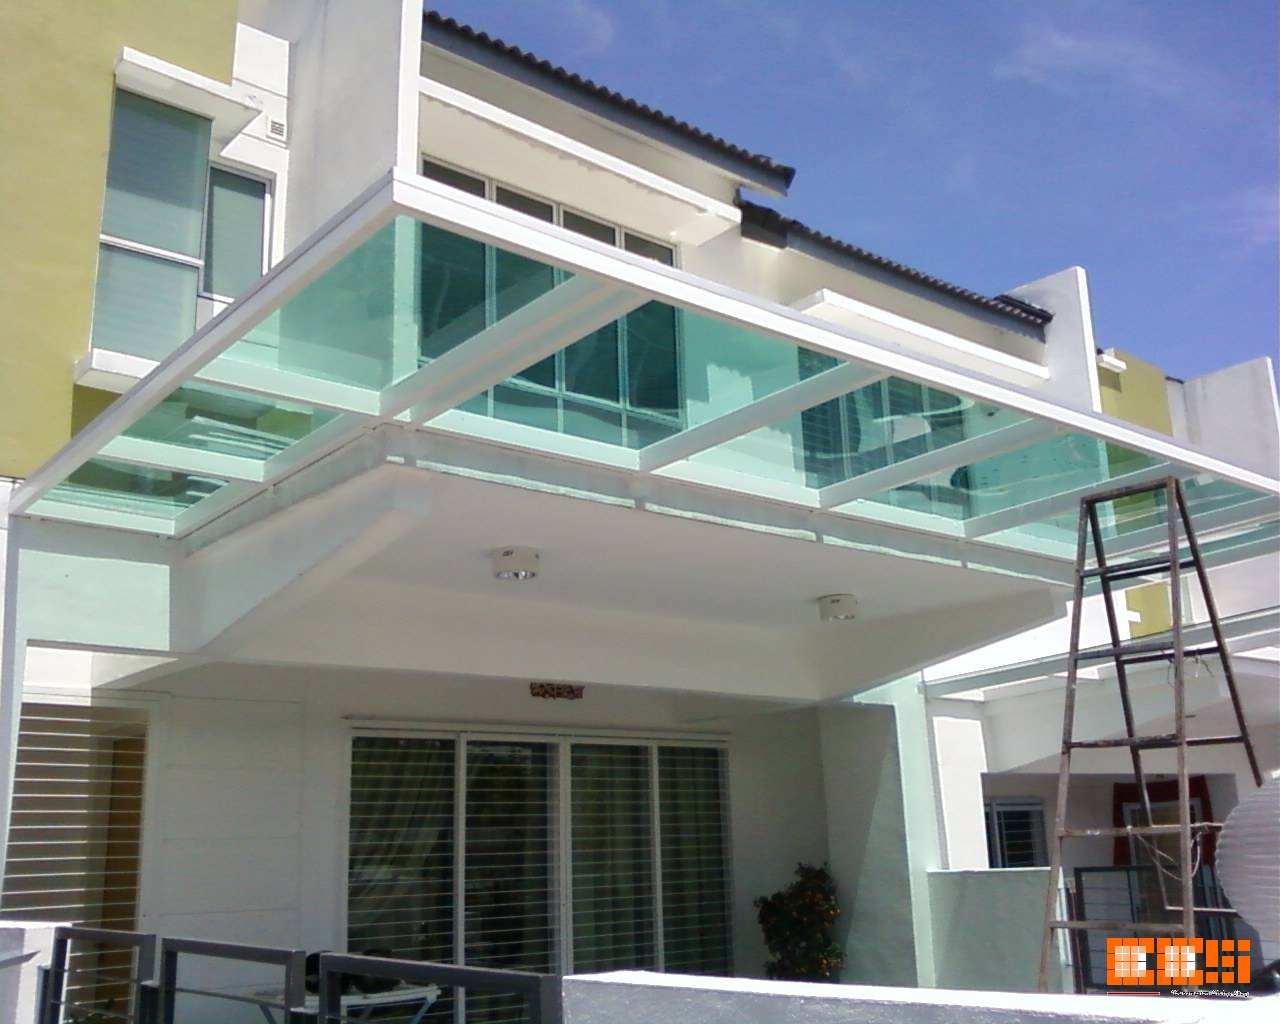 Lkn one stop centre pergola glass - Glas pergola ...